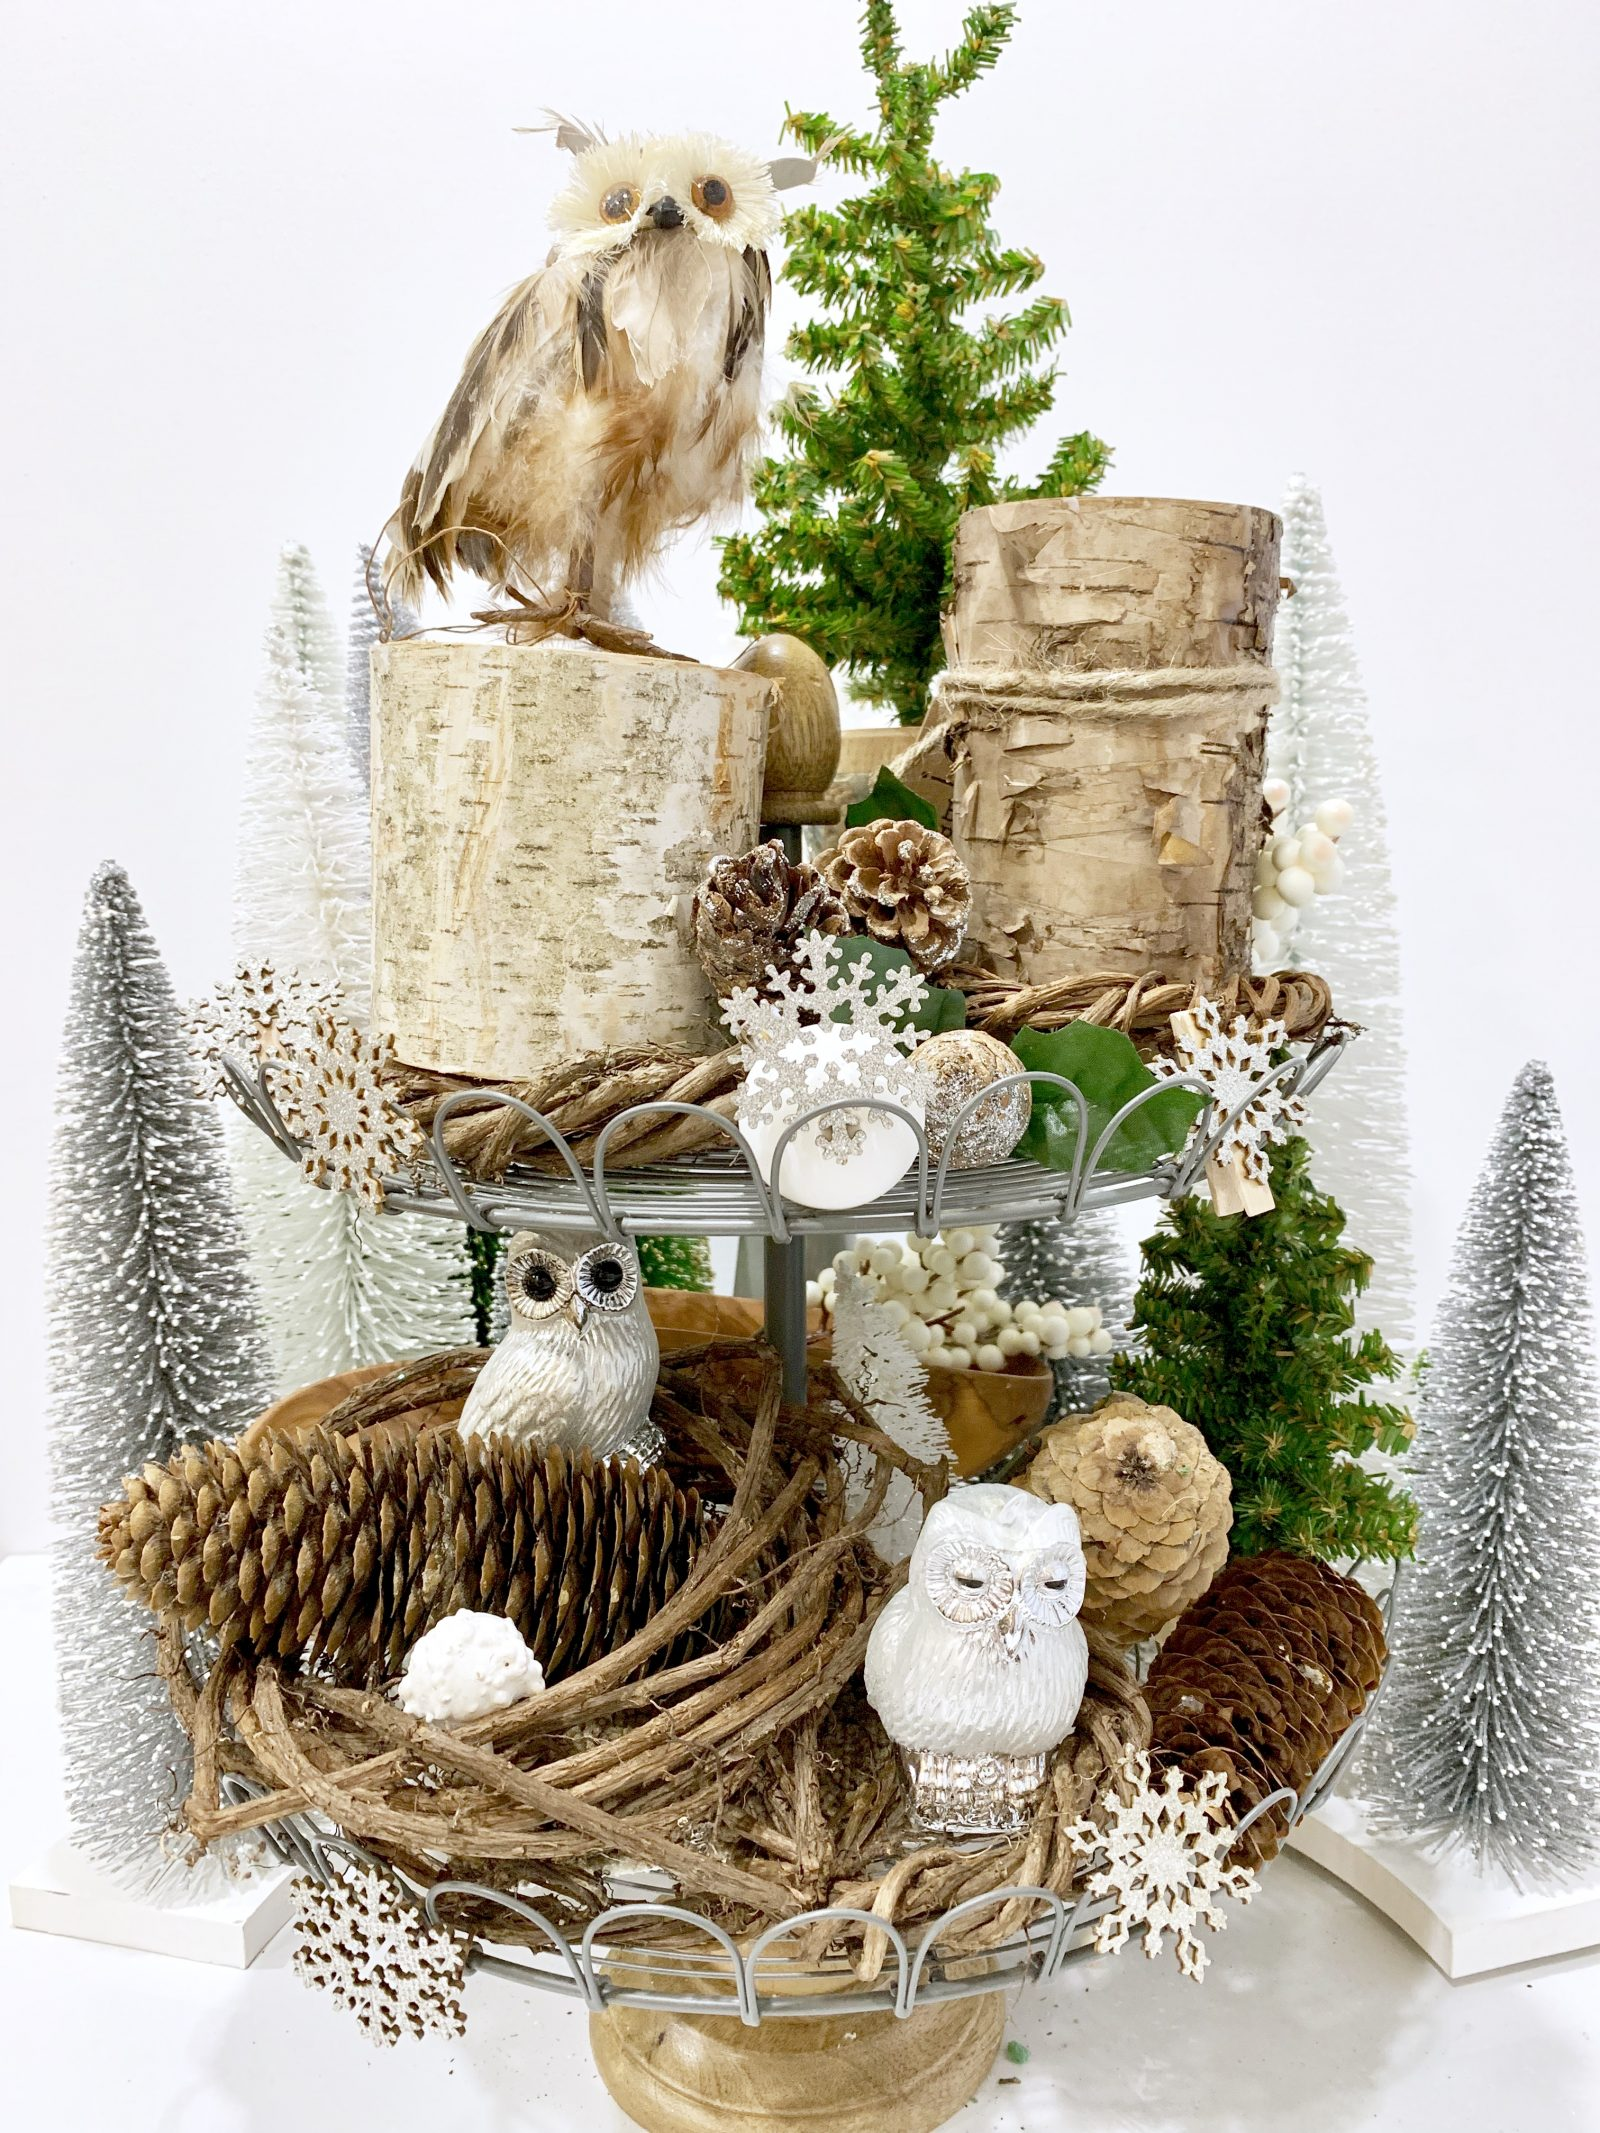 How to Style Your Tiered Stand for Christmas The Natural Beauty of the Christmas Woodlands #Farmhouse #Affordable #BudgetFriendly #Christmas #DIY #ChristmasDecor #FarmhouseDecor